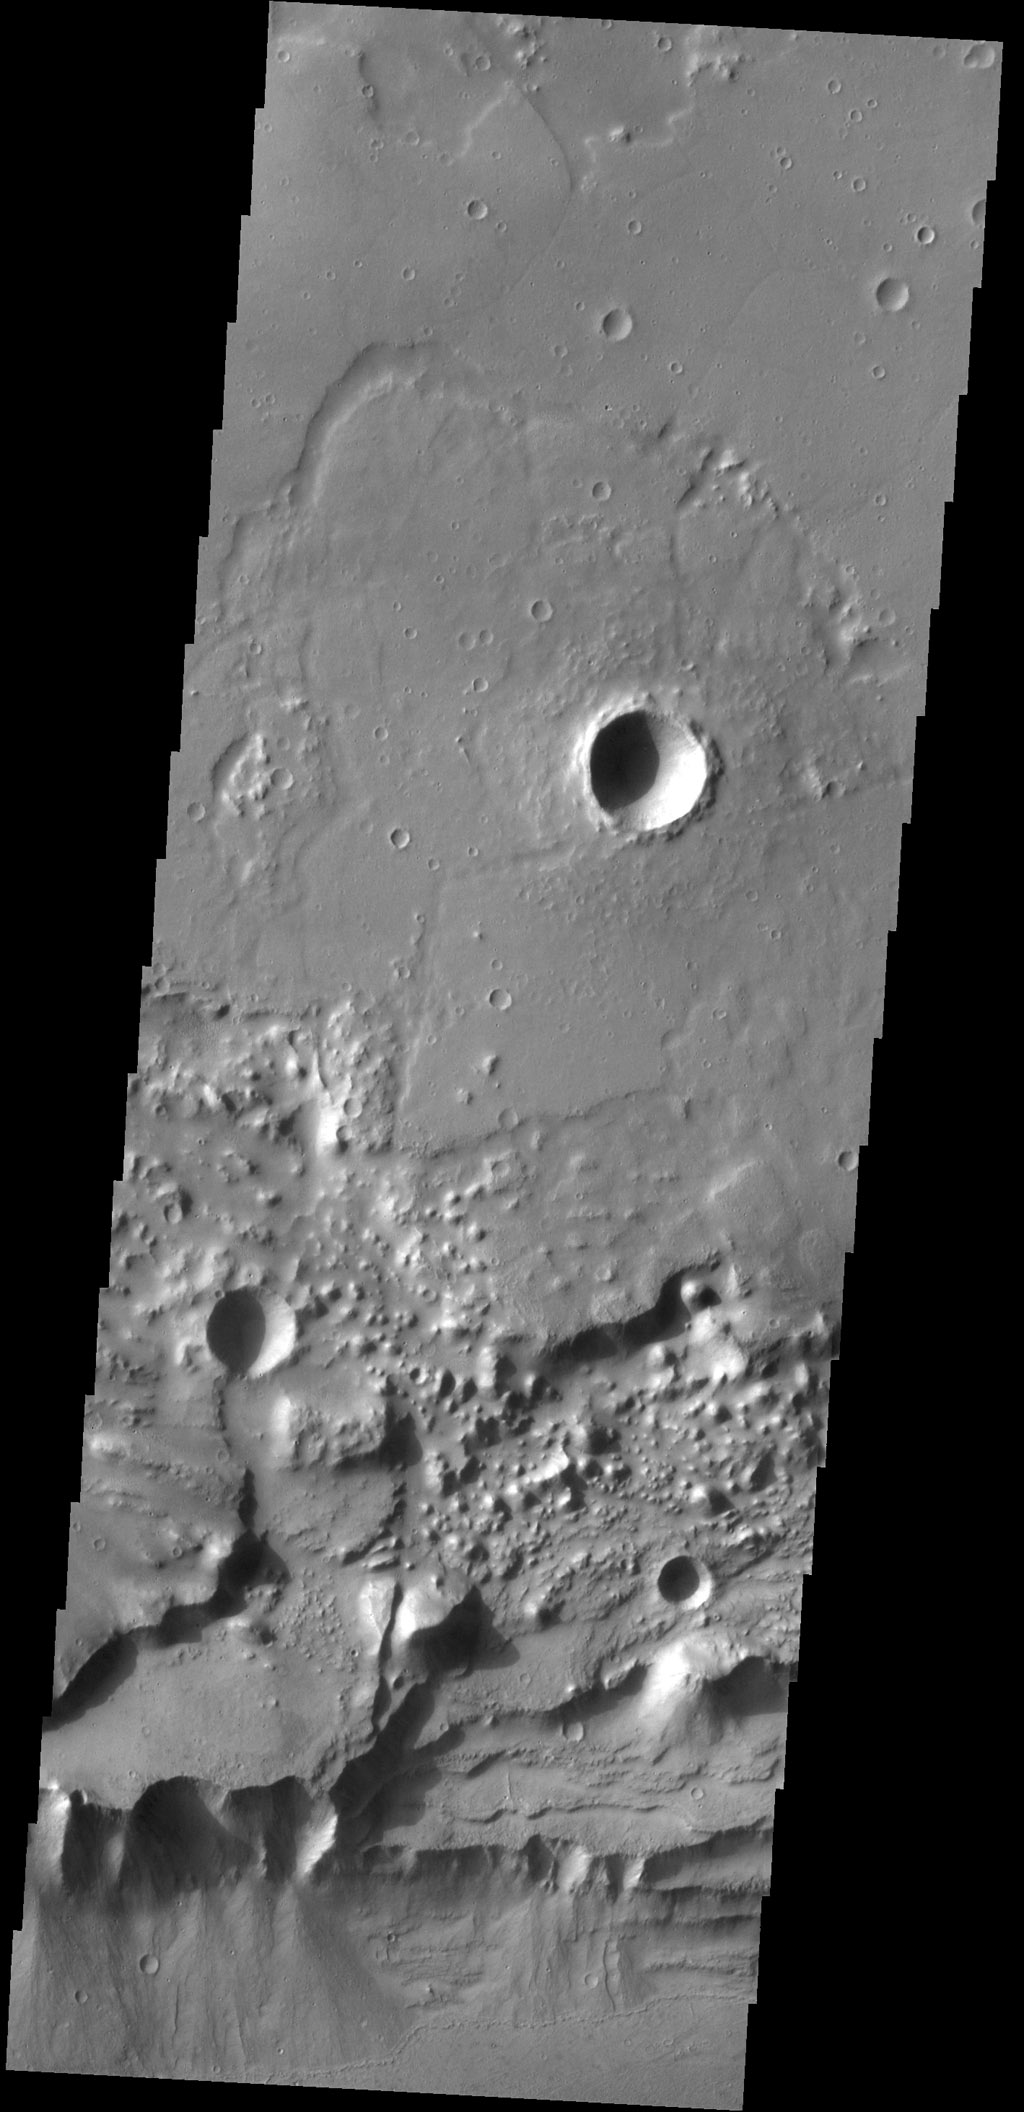 Triangular shaped deposits at cliff edges are termed alluvial fans. Alluvial fans typically form in arid regions were water flow is limited, so deposits of material are not washed away as seen by NASA's 2001 Mars Odyssey spacecraft.